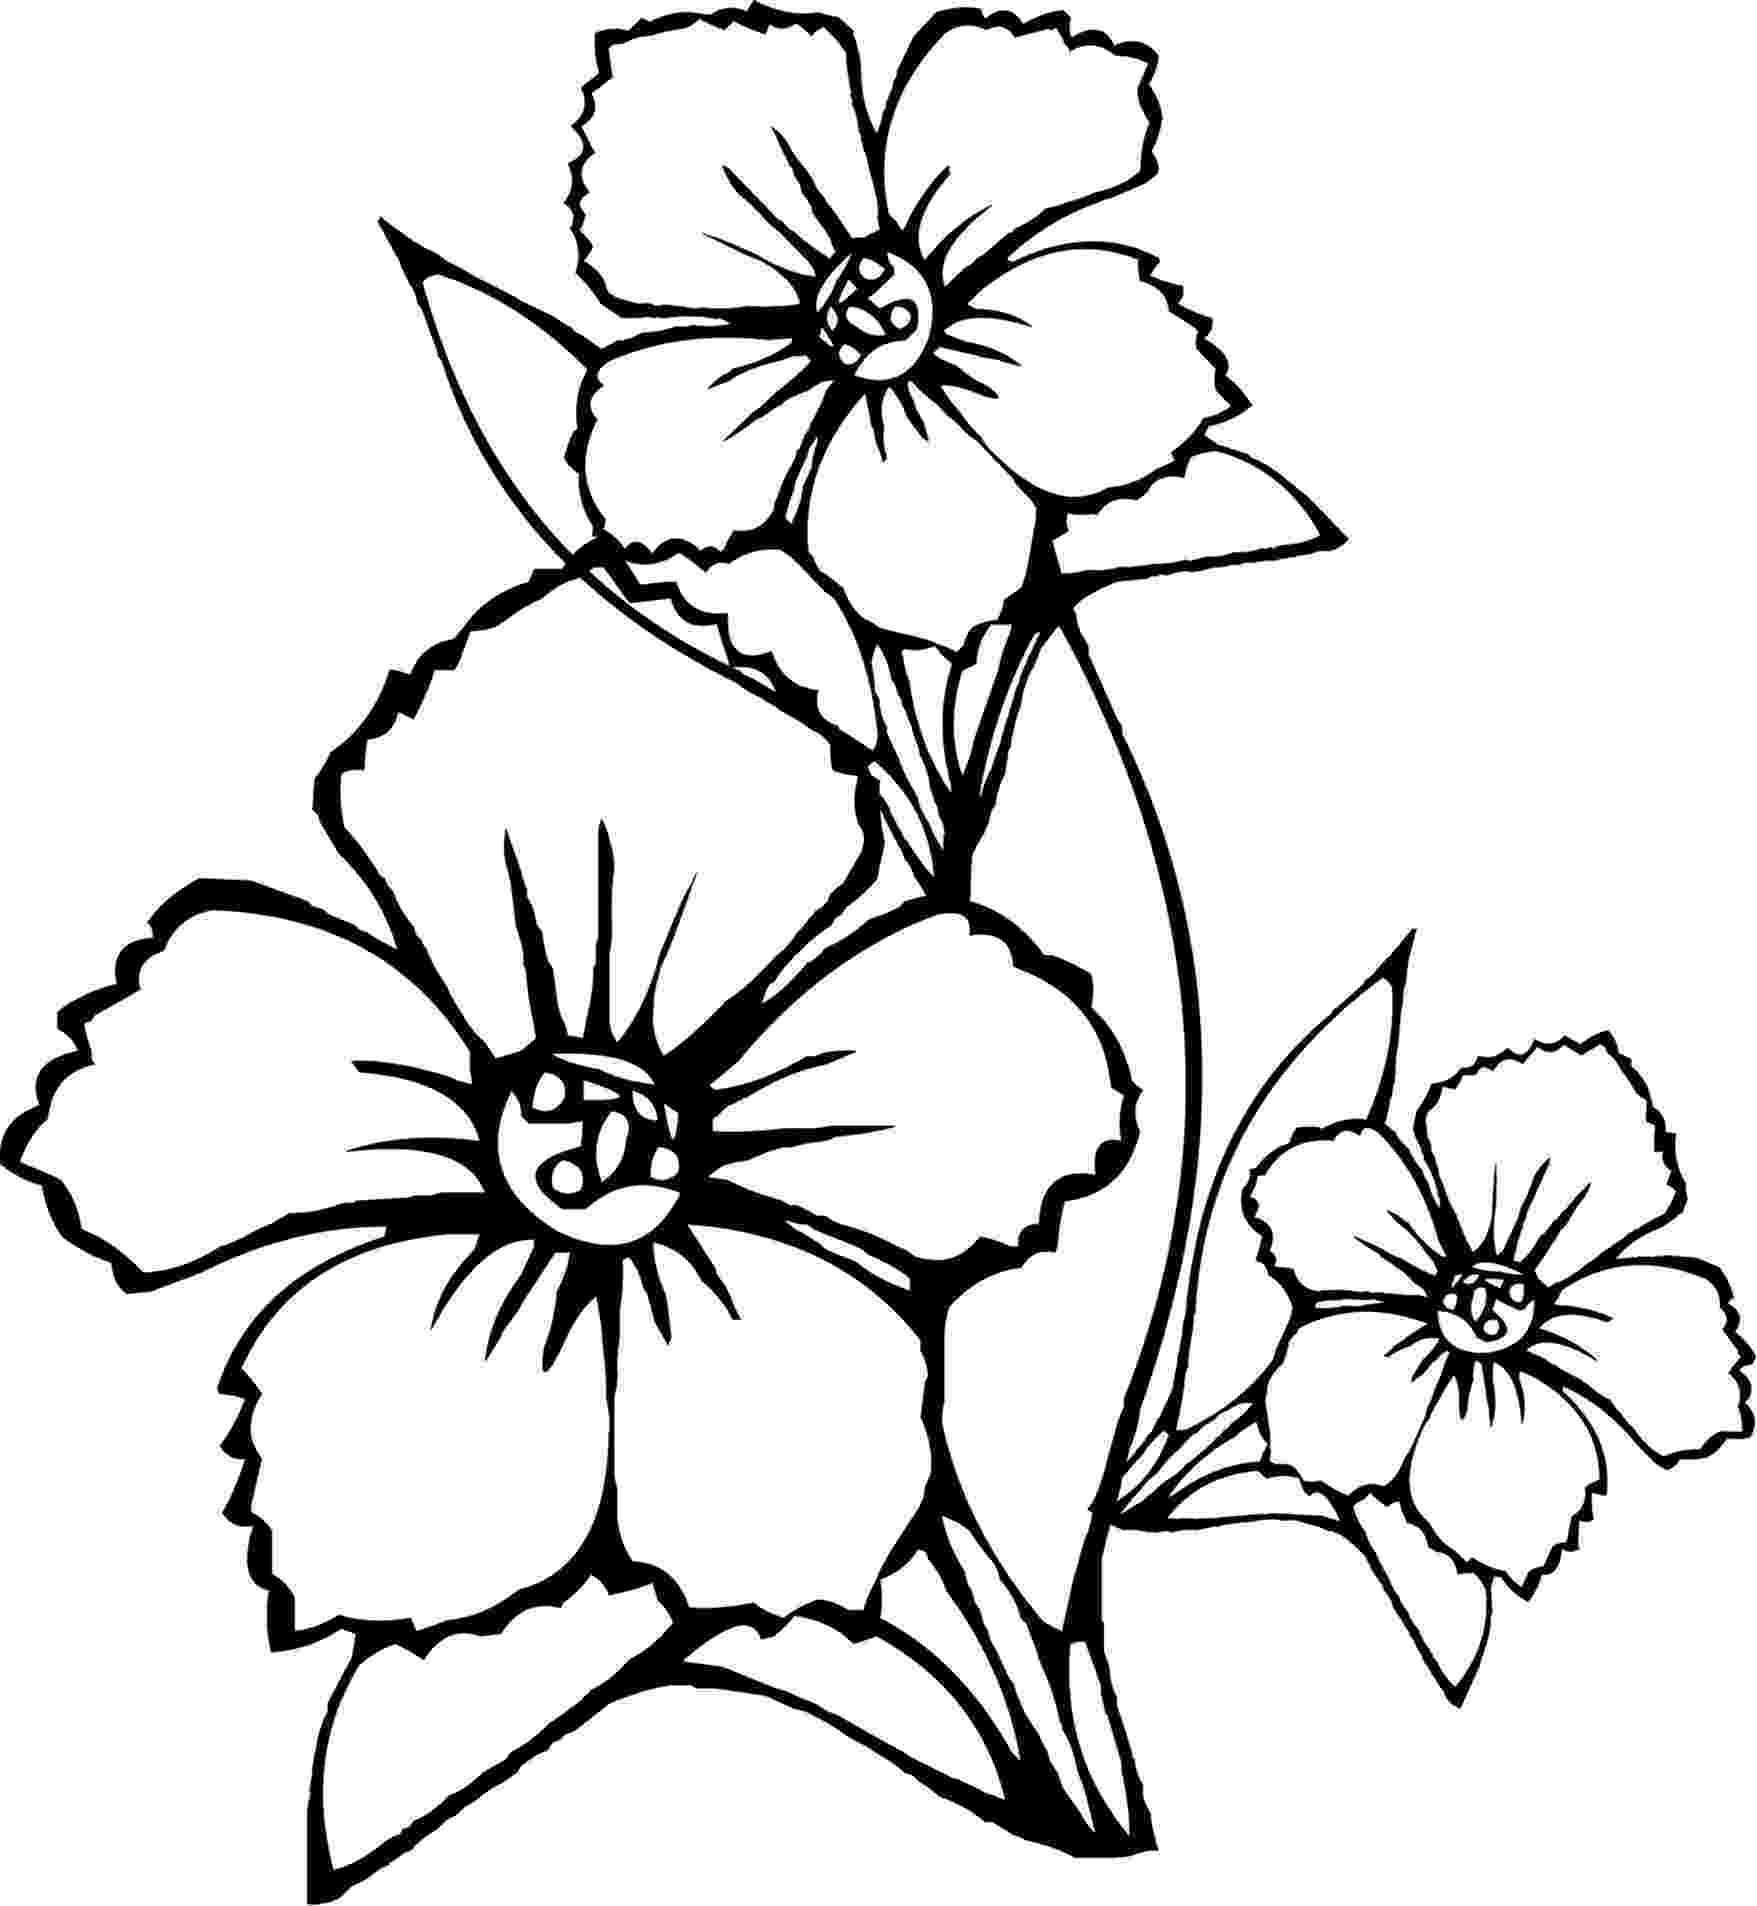 printable coloring pages plants plant coloring pages coloring pages to download and print pages plants coloring printable